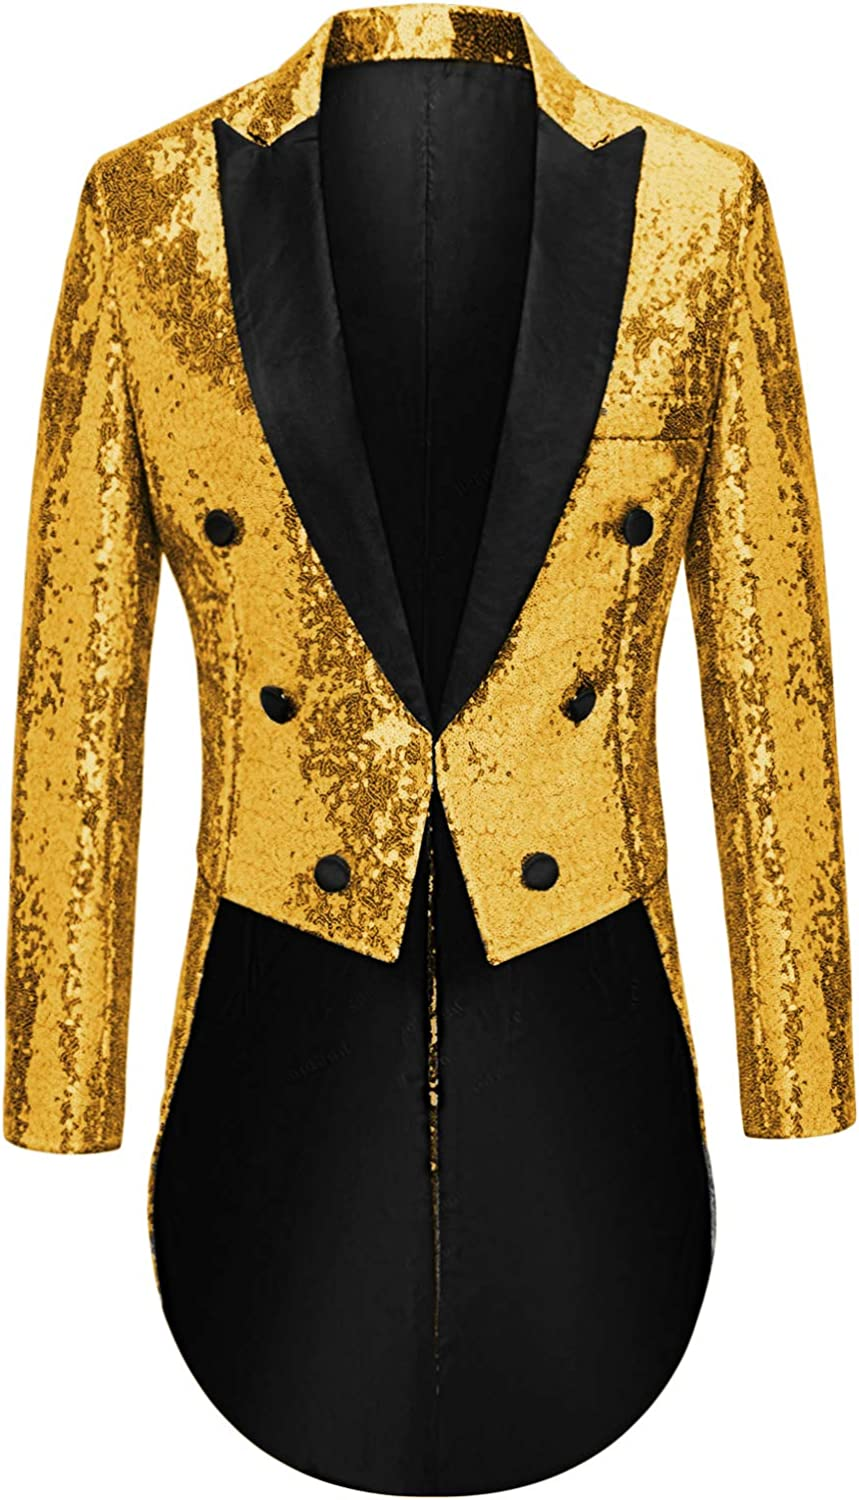 MAGE MALE Mens Sequin Tuxedo Jacket Tails Slim Fit Tailcoat Dress Coat Swallowtail Dinner Party Wedding Blazer Suit Jacket